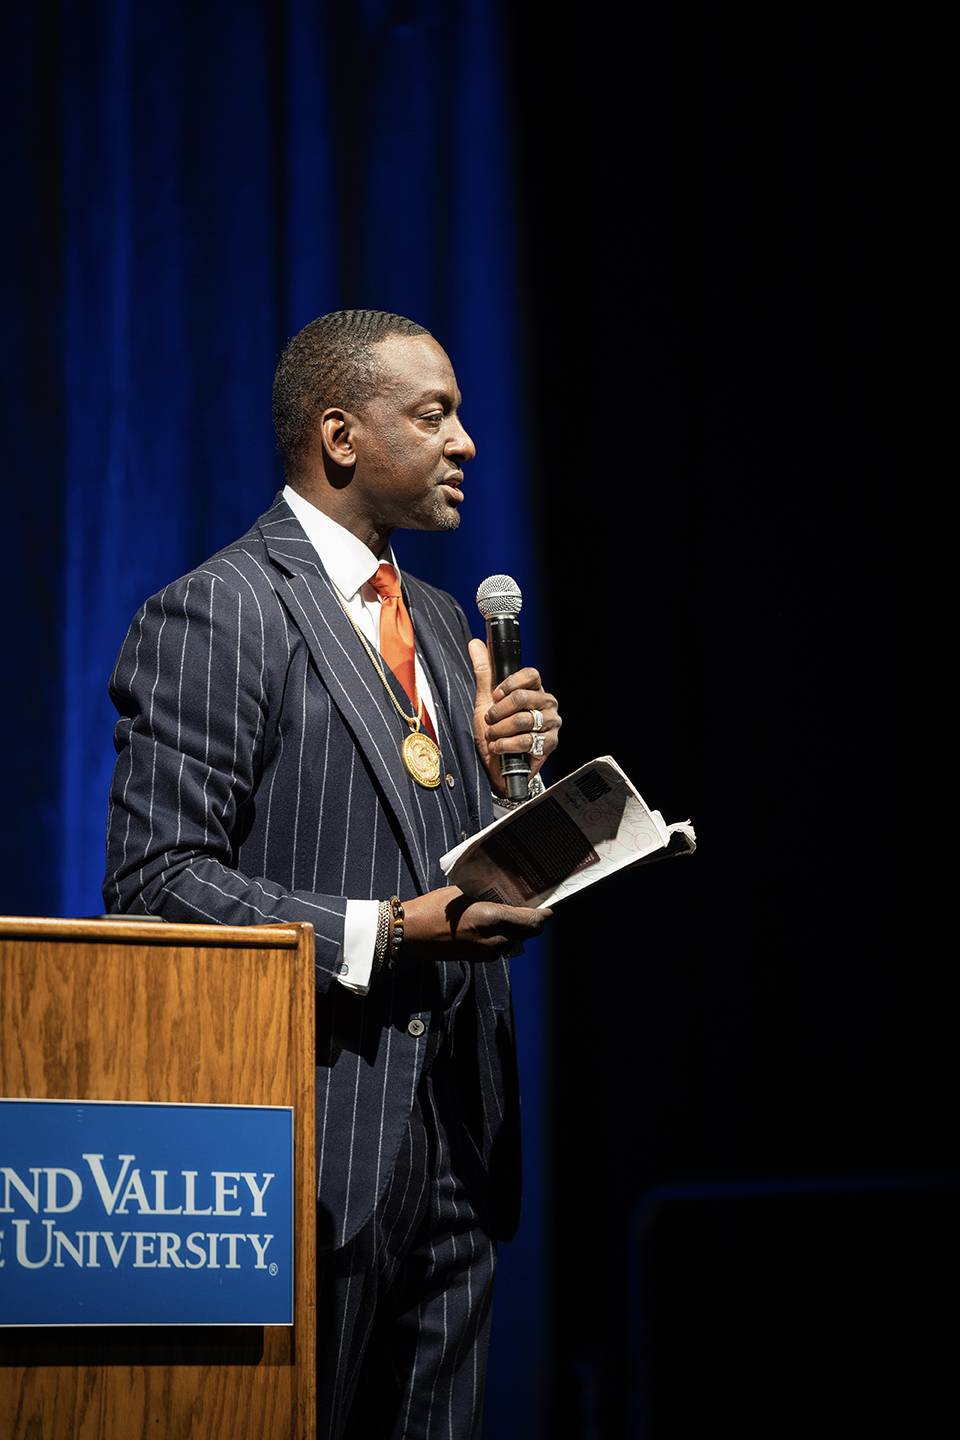 Yusef Salaam gives a presentation